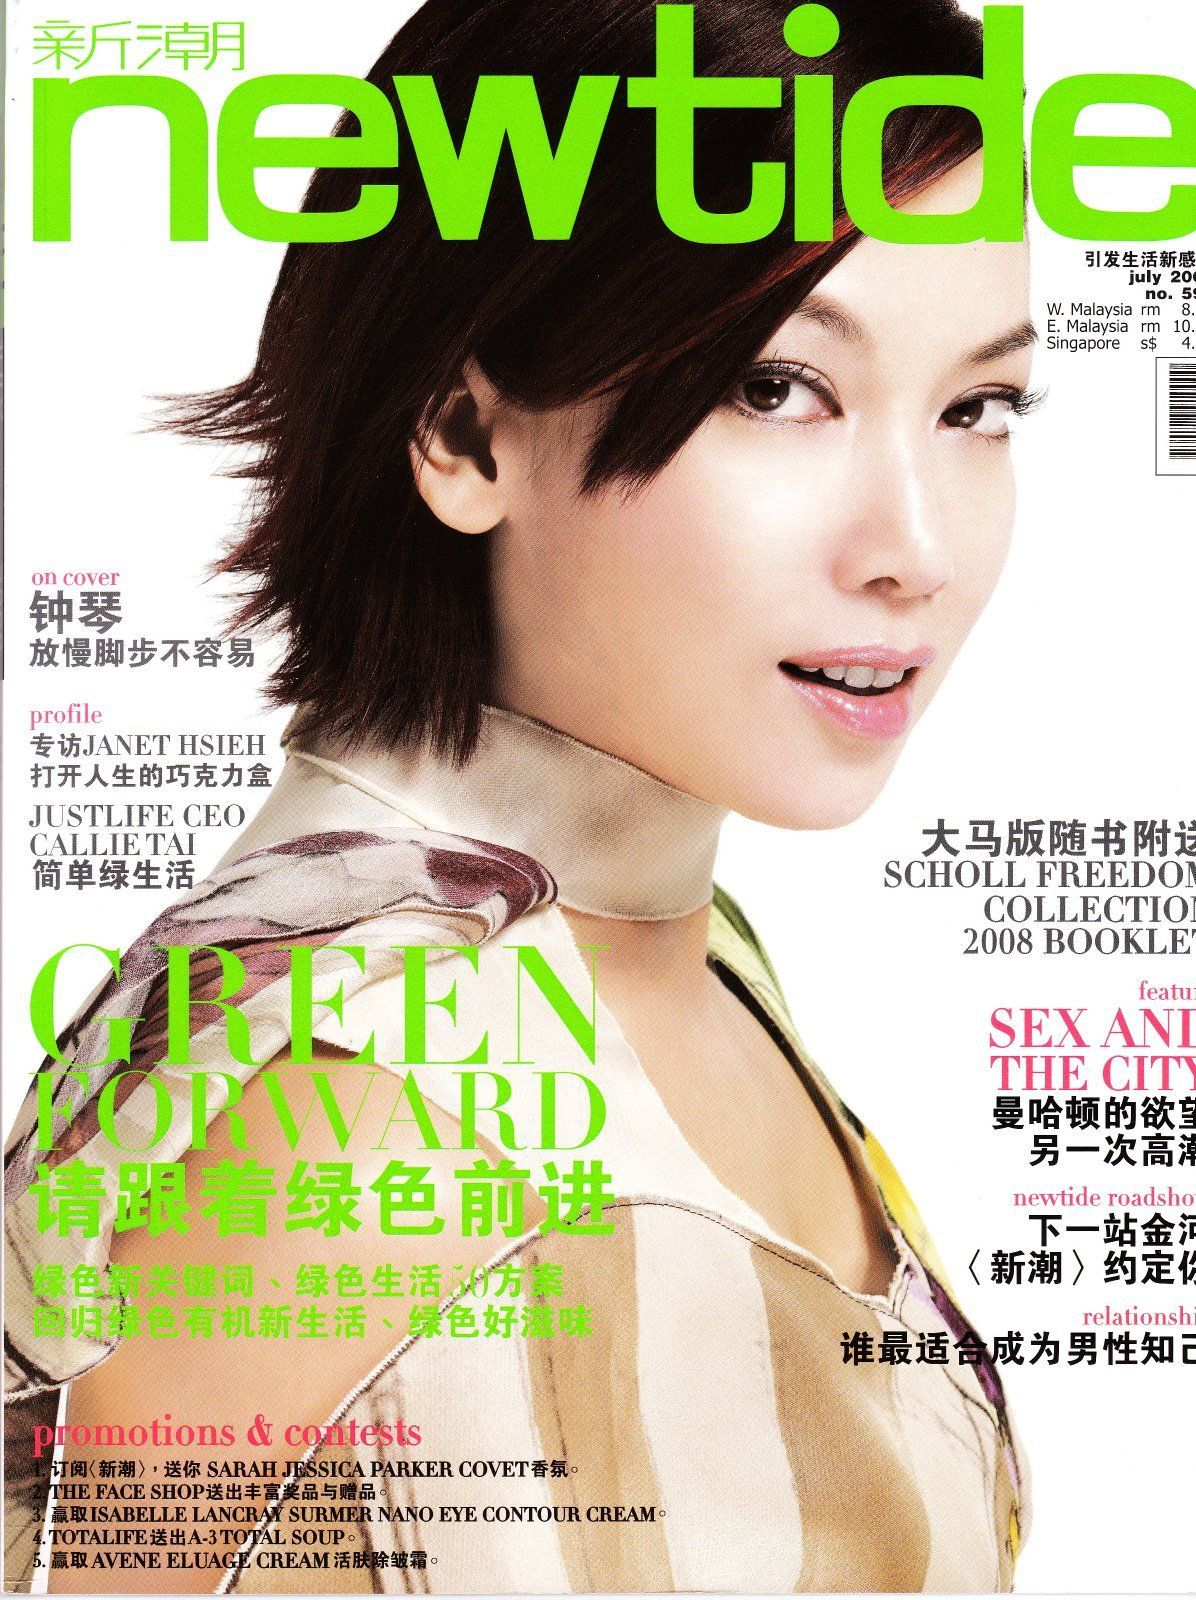 ) she graced the cover of newtide magazine in 2007. (With